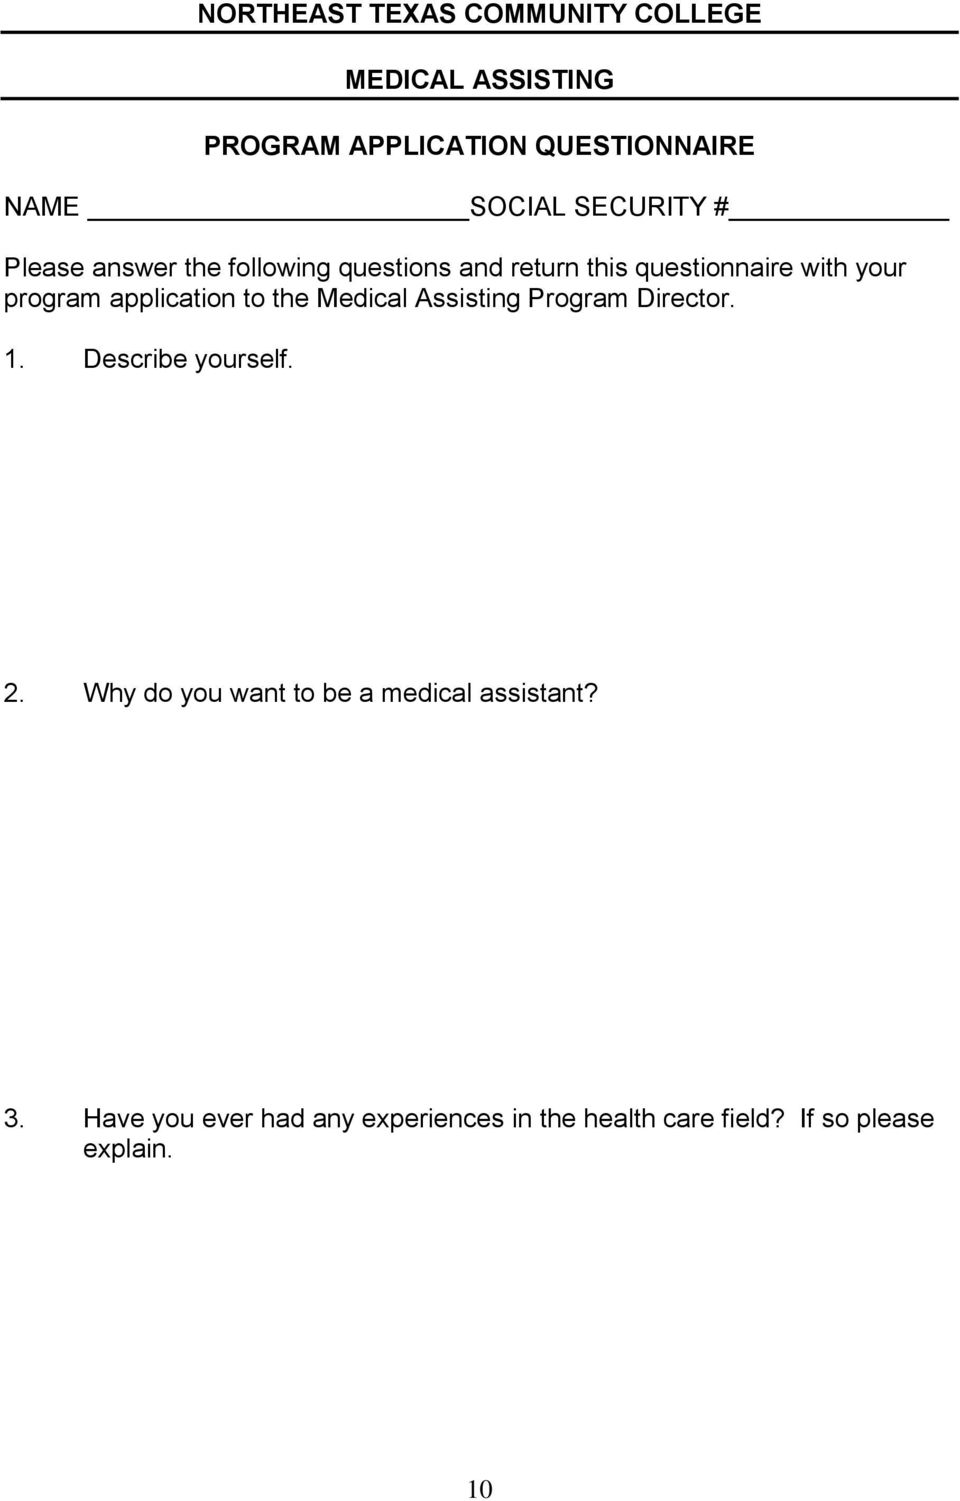 application to the Medical Assisting Program Director. 1. Describe yourself. 2.